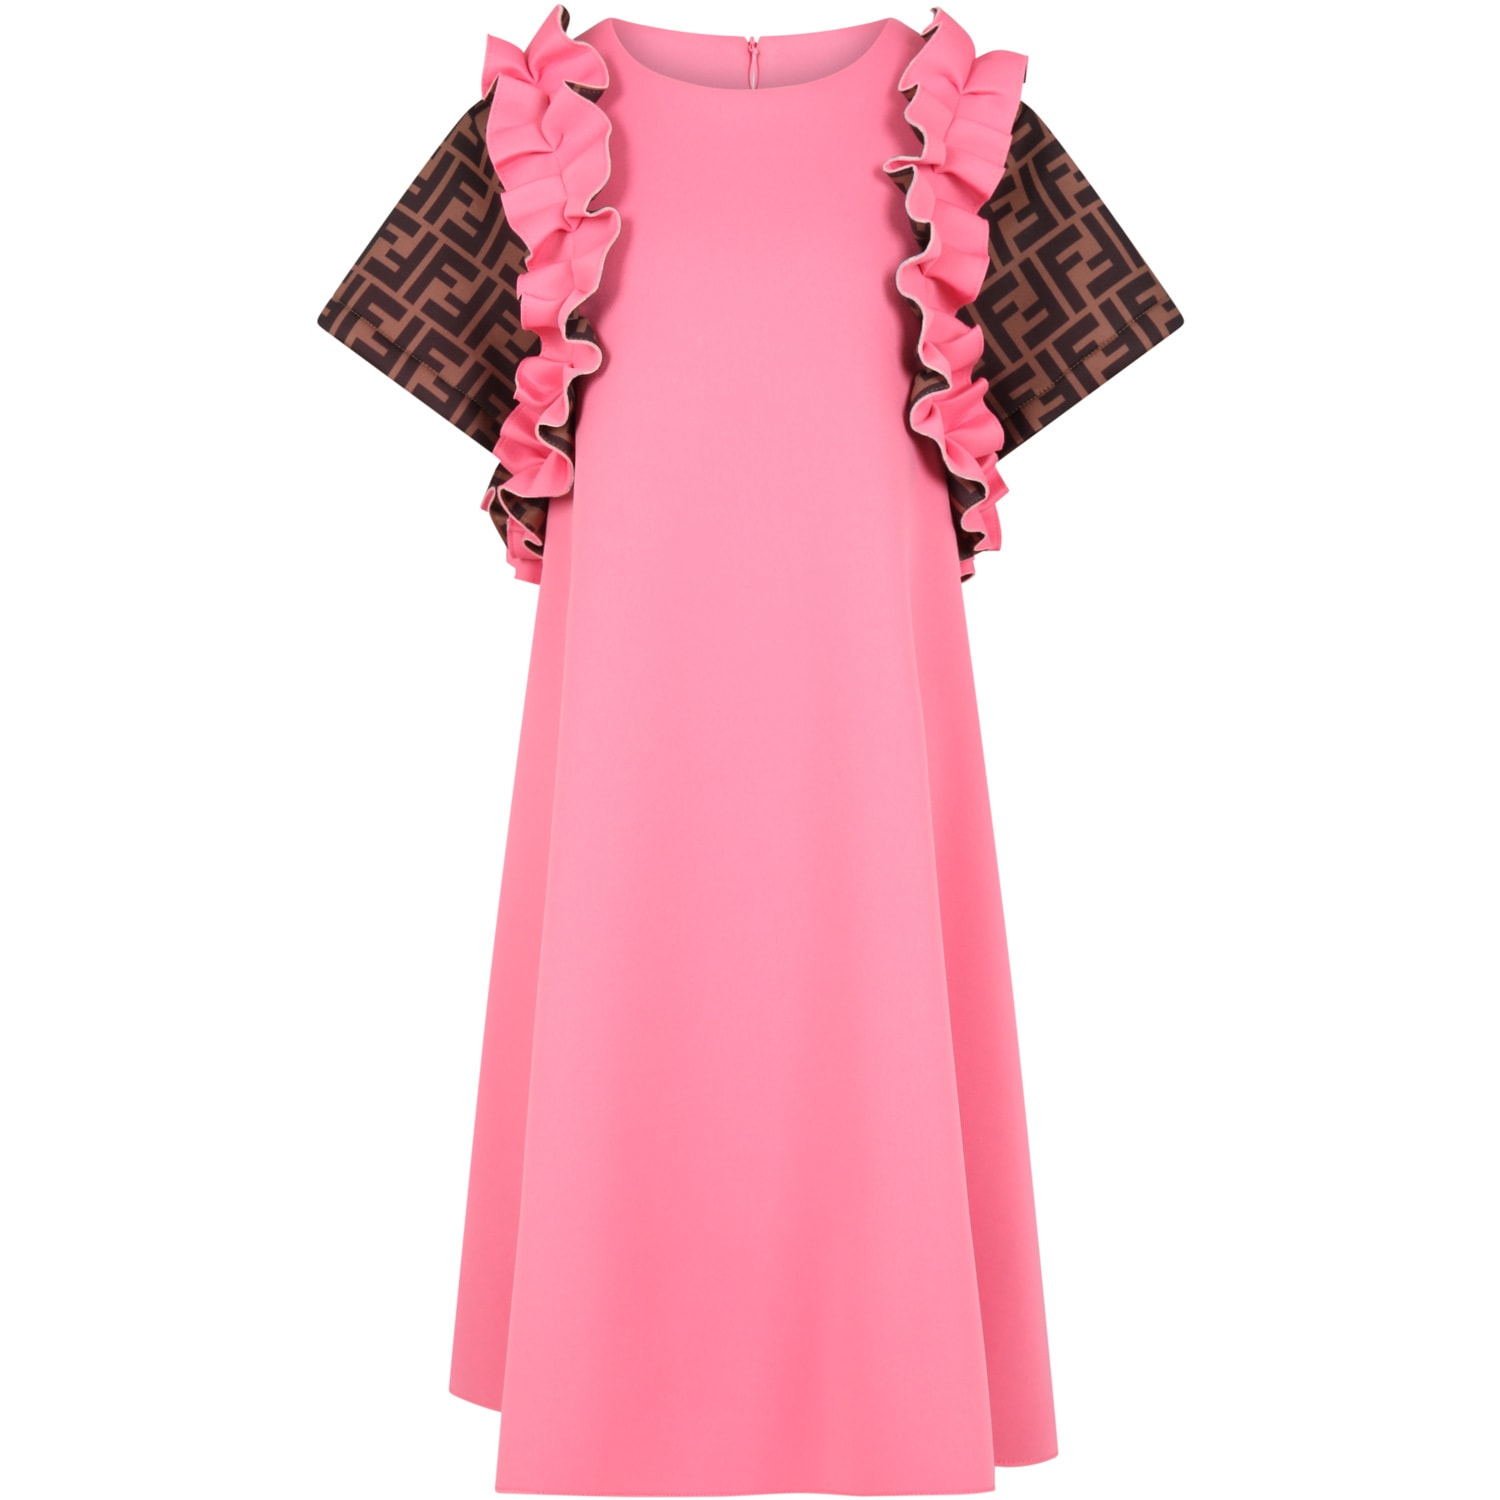 Fendi FUCHSIA DRESS FOR GIRL WITH ICONIC DOUBLE FF